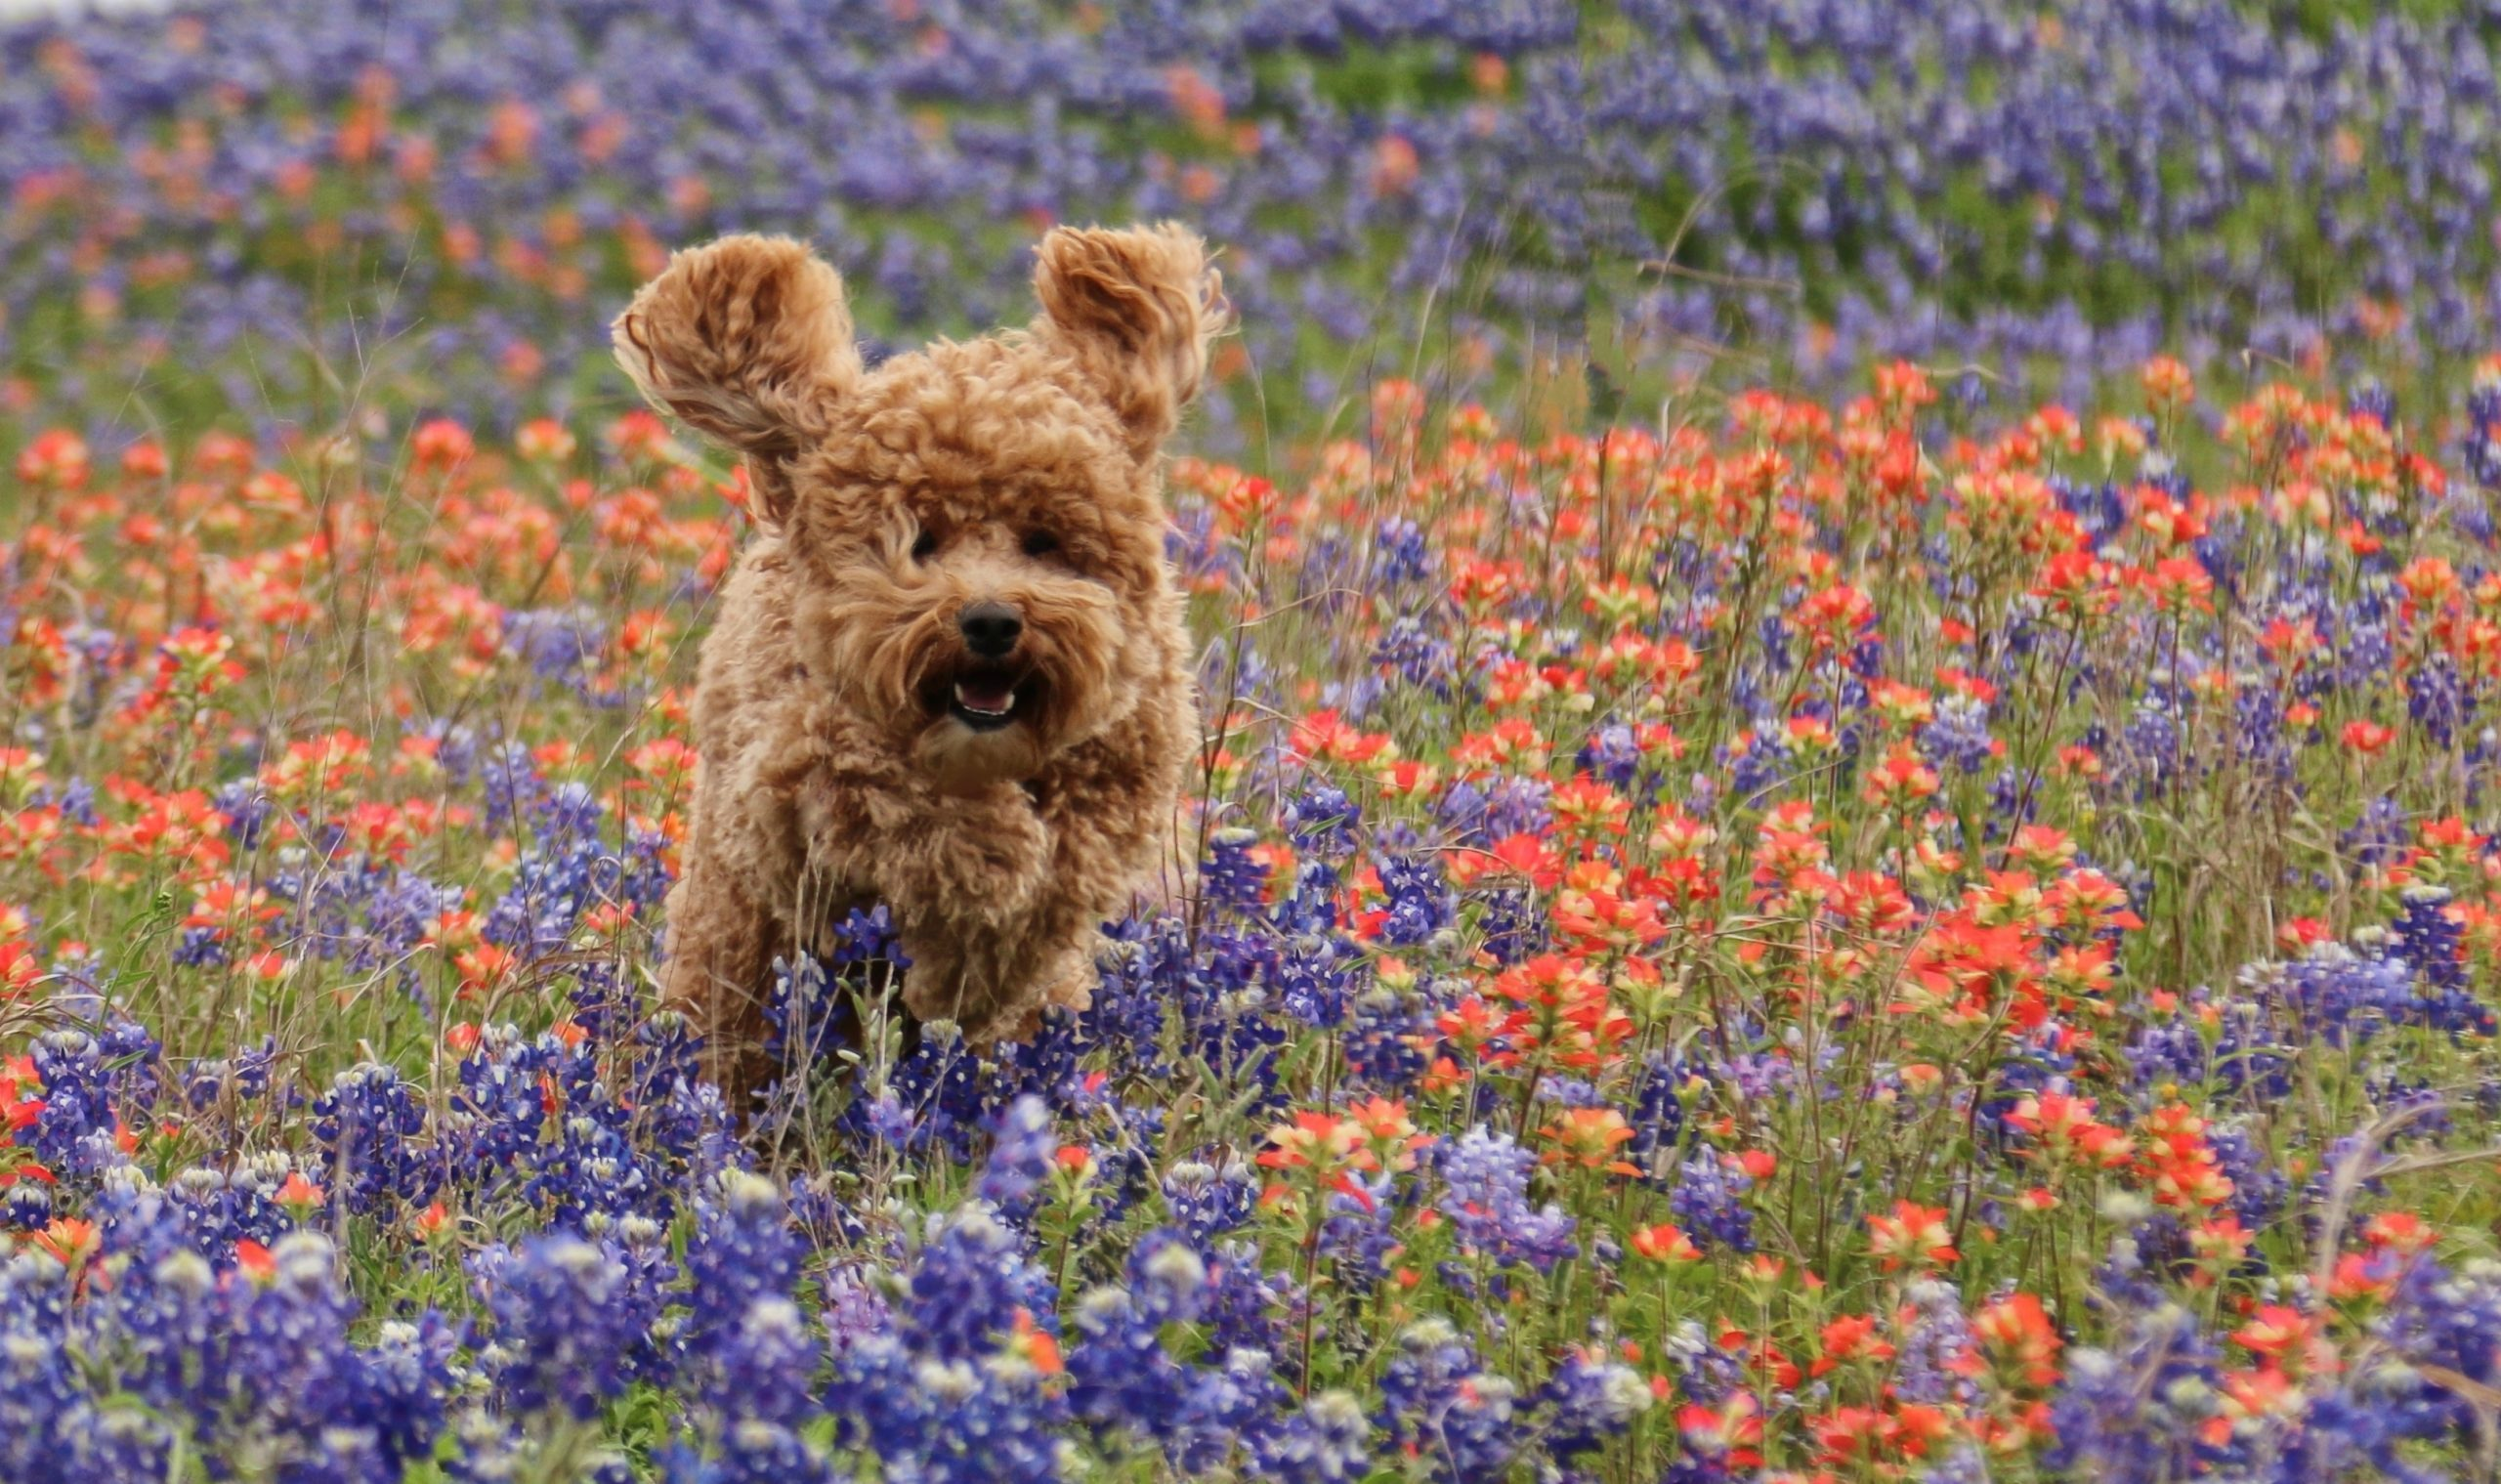 Pets in the Wildflowers